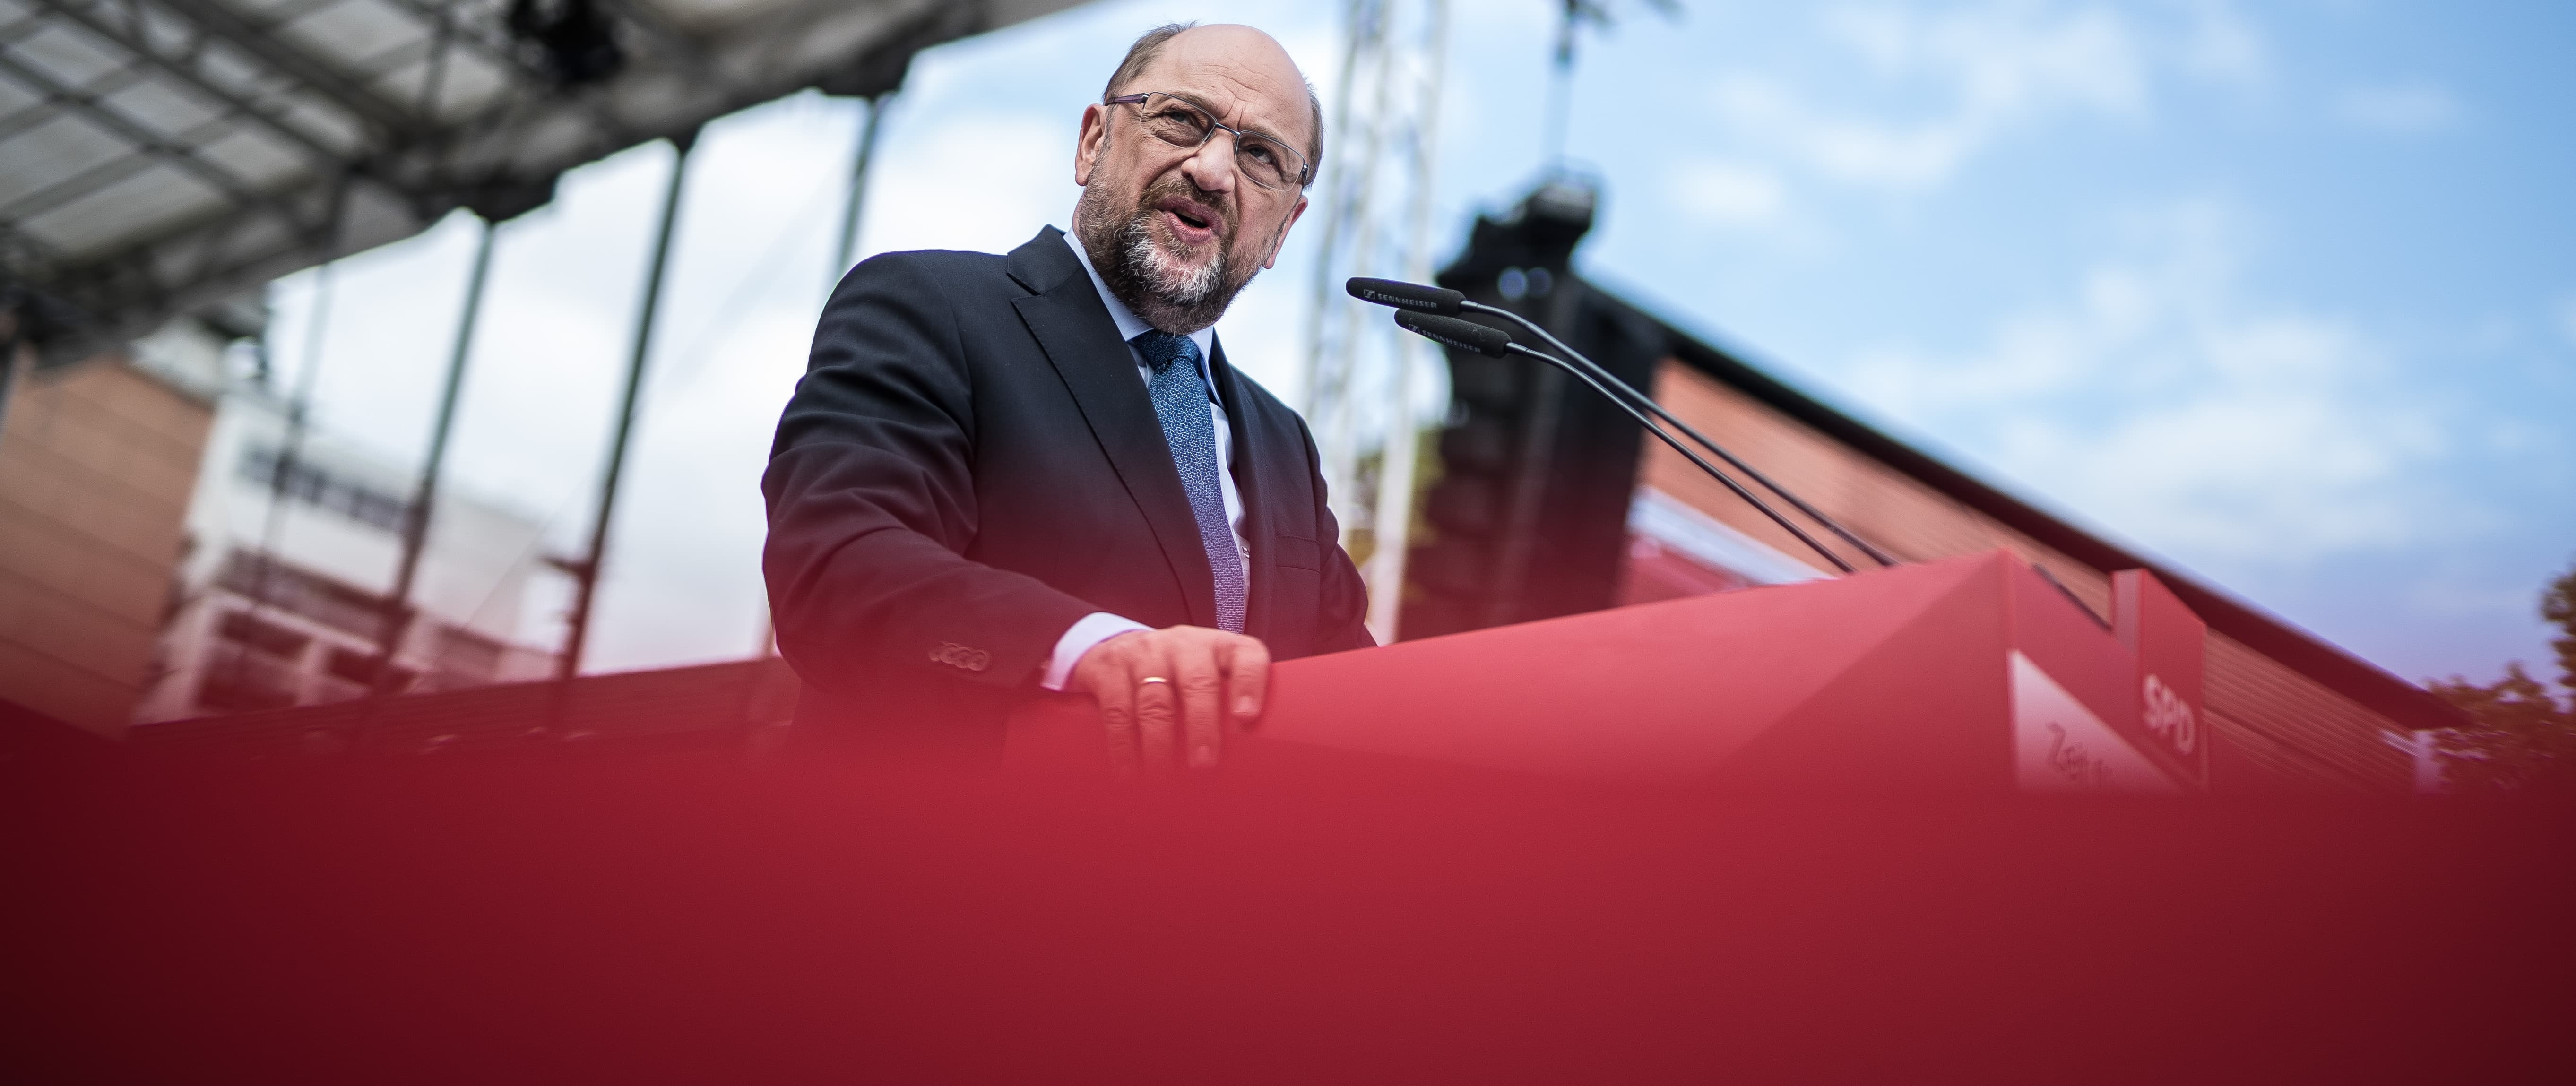 SDP's Martin Schulz, candidate for German Chancellor, September 2017 (Photo: Getty Images/Mata Hitij)